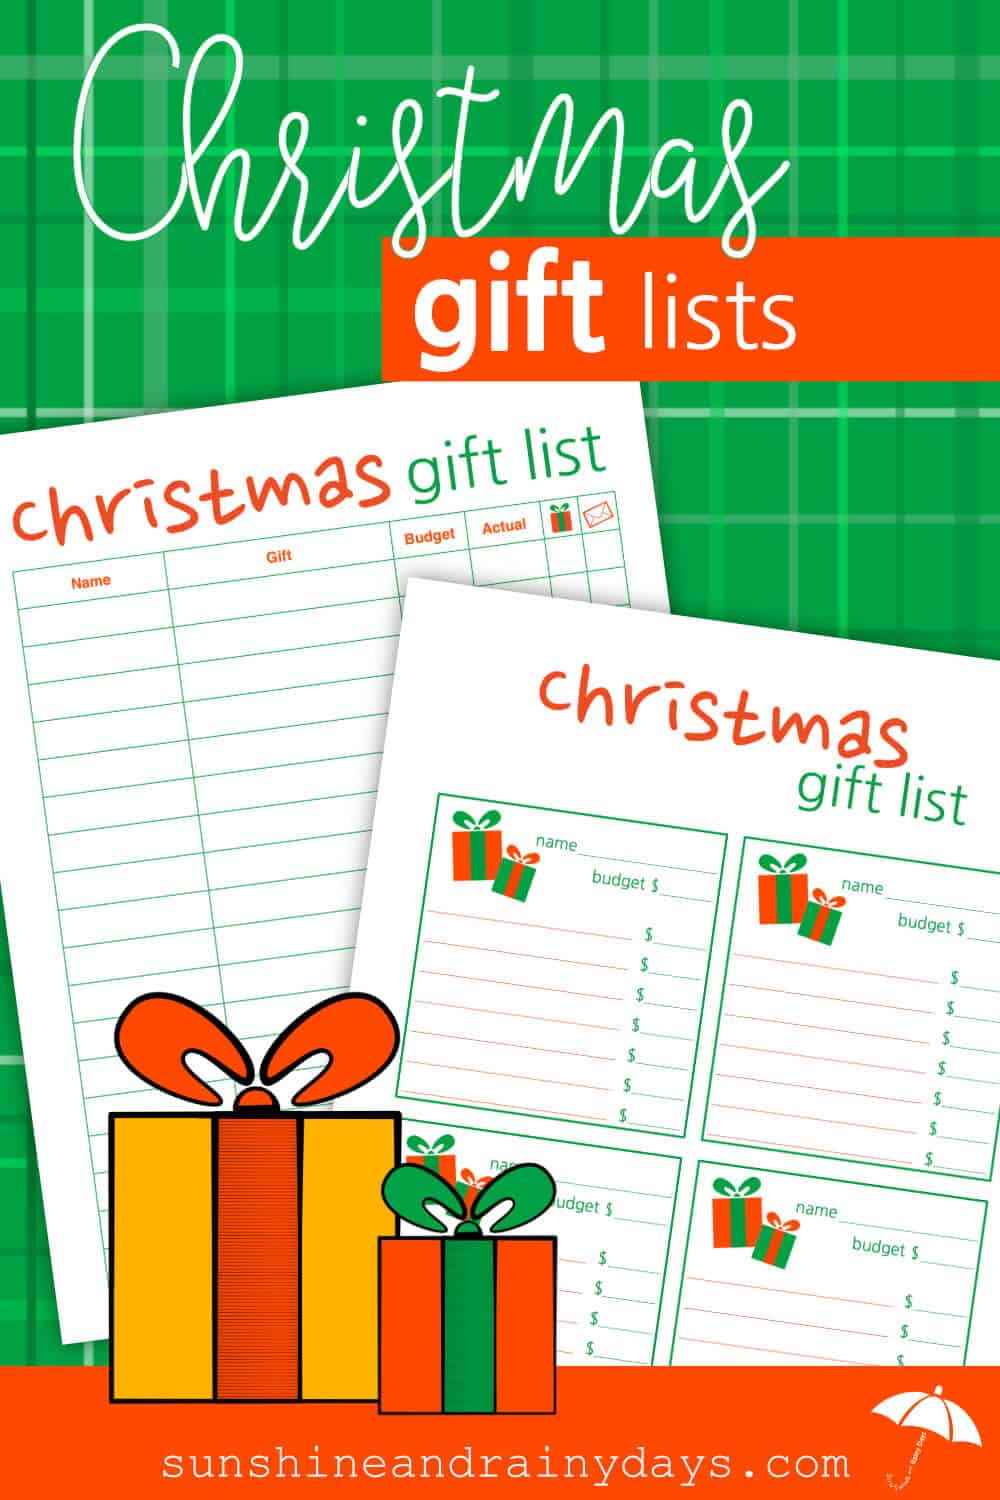 An organized Christmas starts right here with the Christmas Gift List!